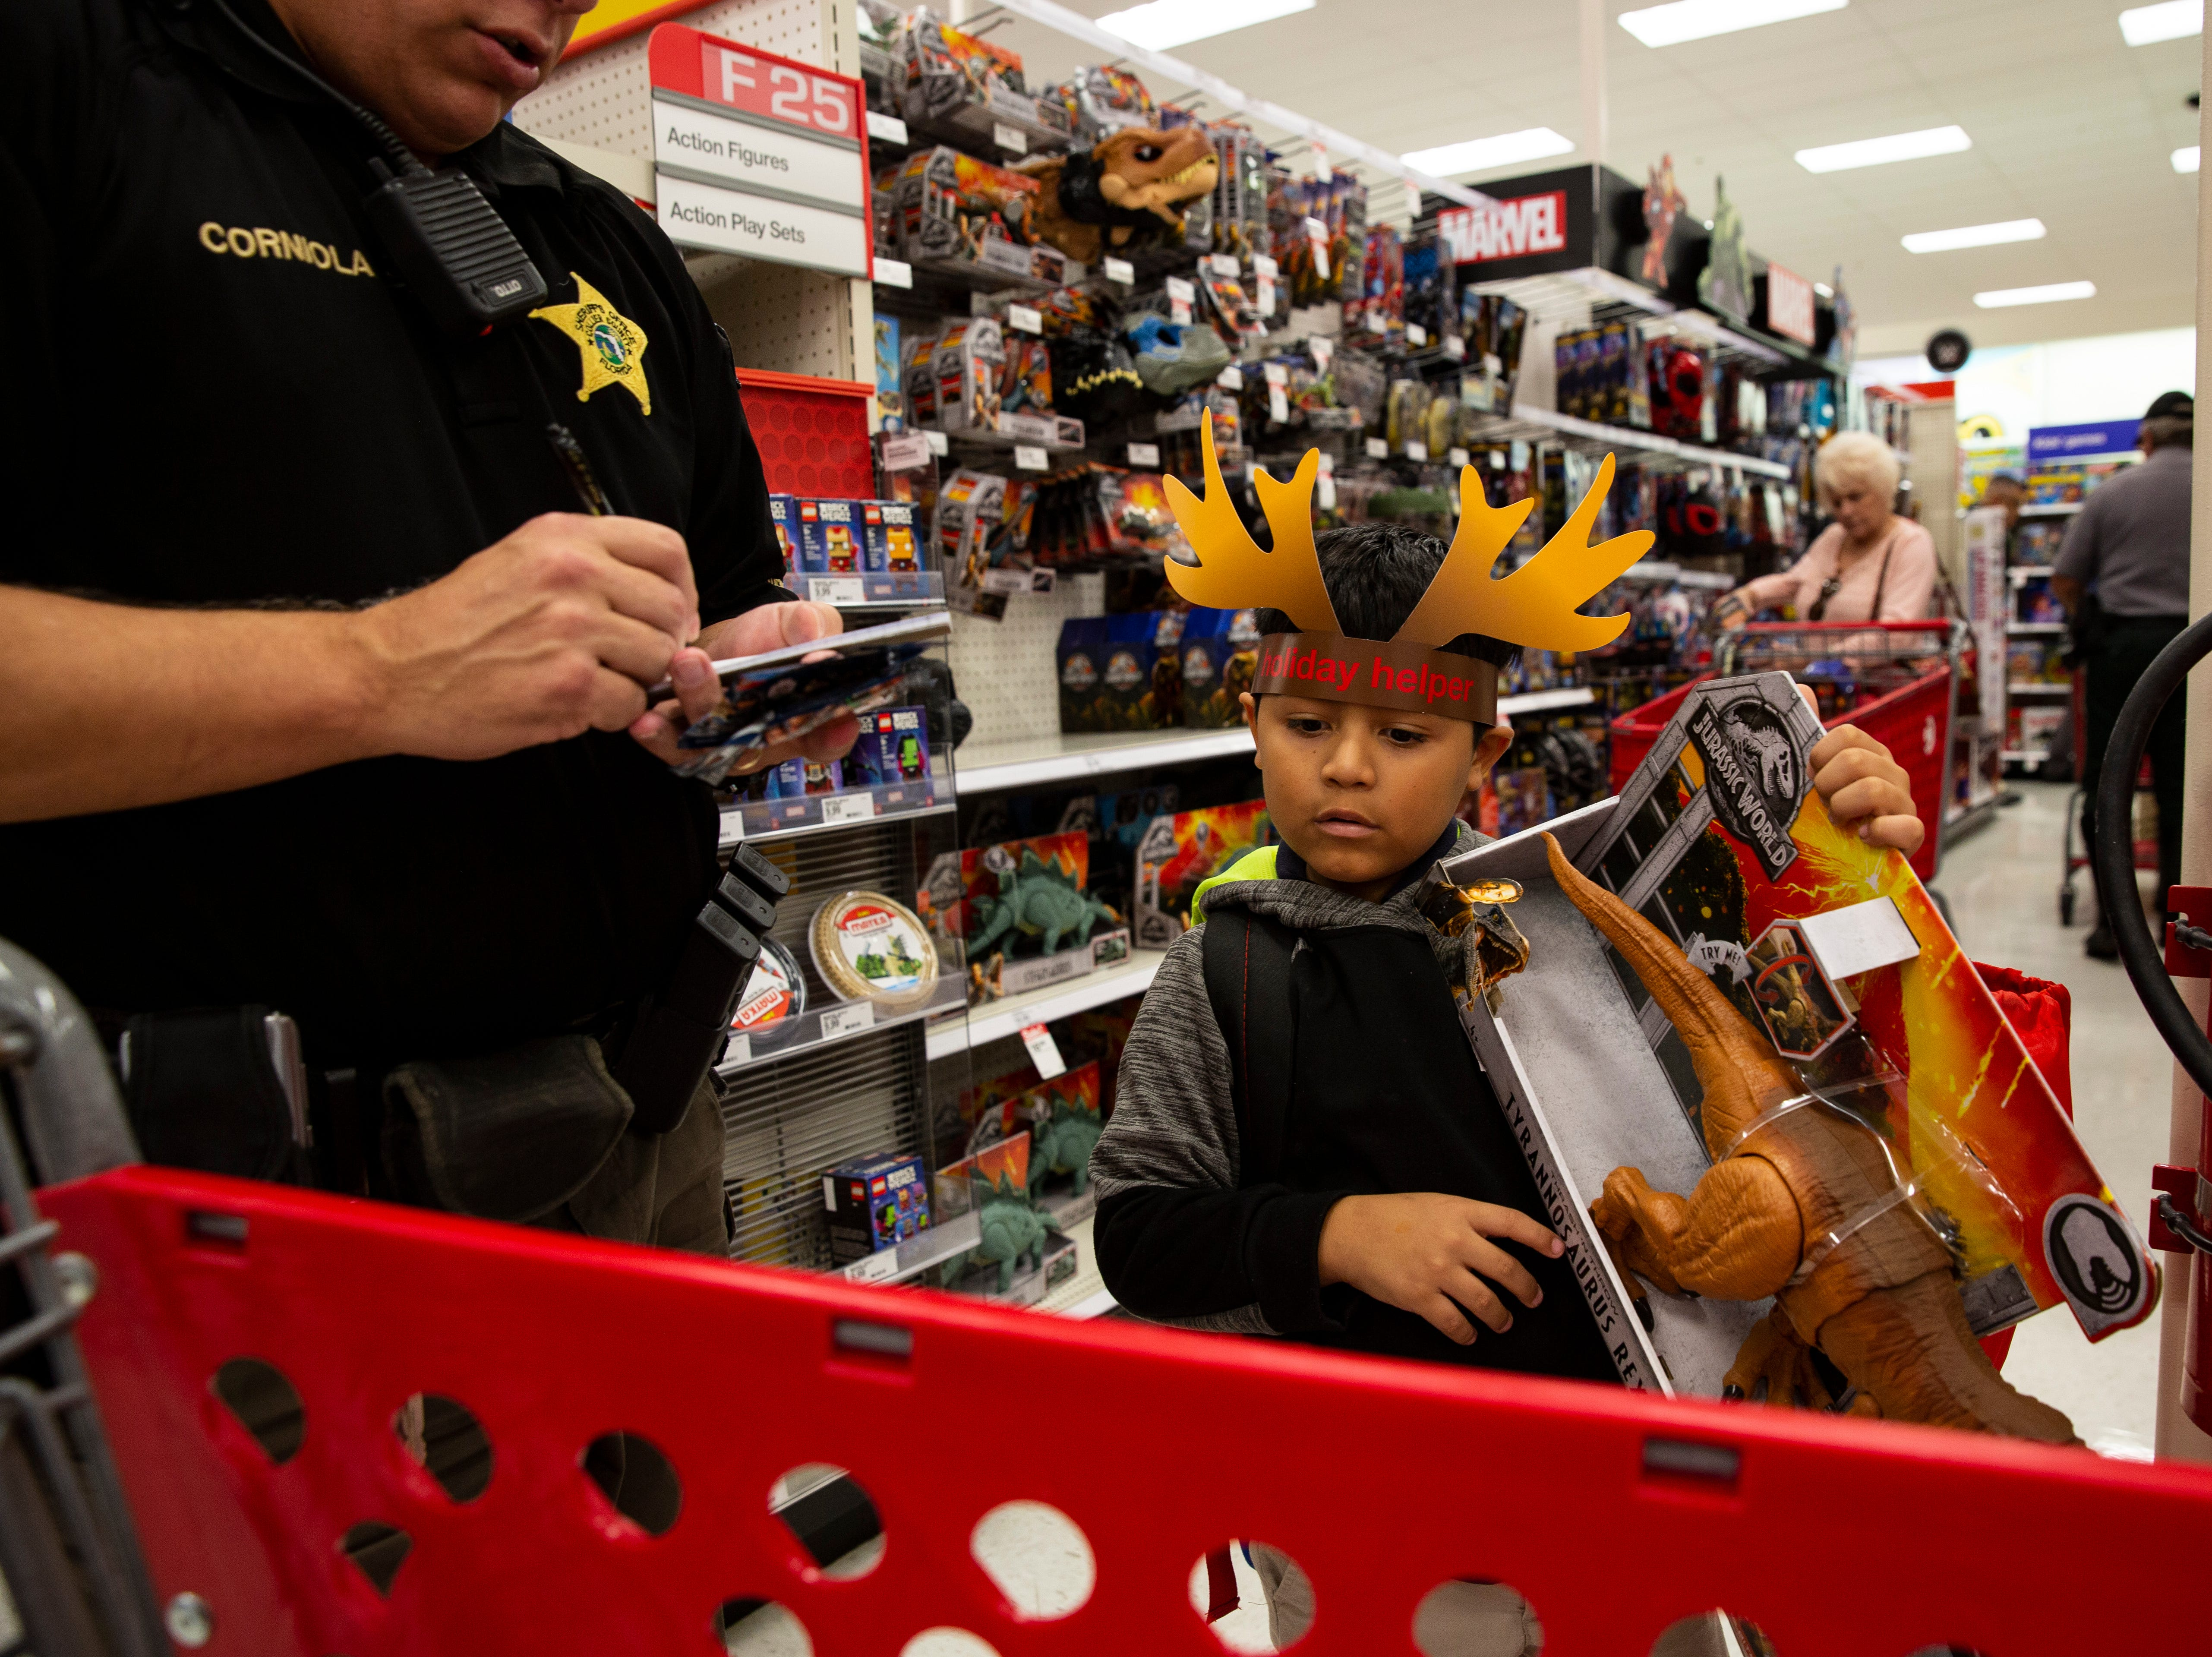 Roy Pineda tries to decide if he can purchase the Jurassic World T-Rex during the ÒShop With a SheriffÓ event at Target in North Naples on Tuesday, December 18, 2018. The Jewish Federation of Greater Naples partnered with the Collier County SheriffÕs Office for the fourth year in a row to help 78 children and their families during the holiday season.